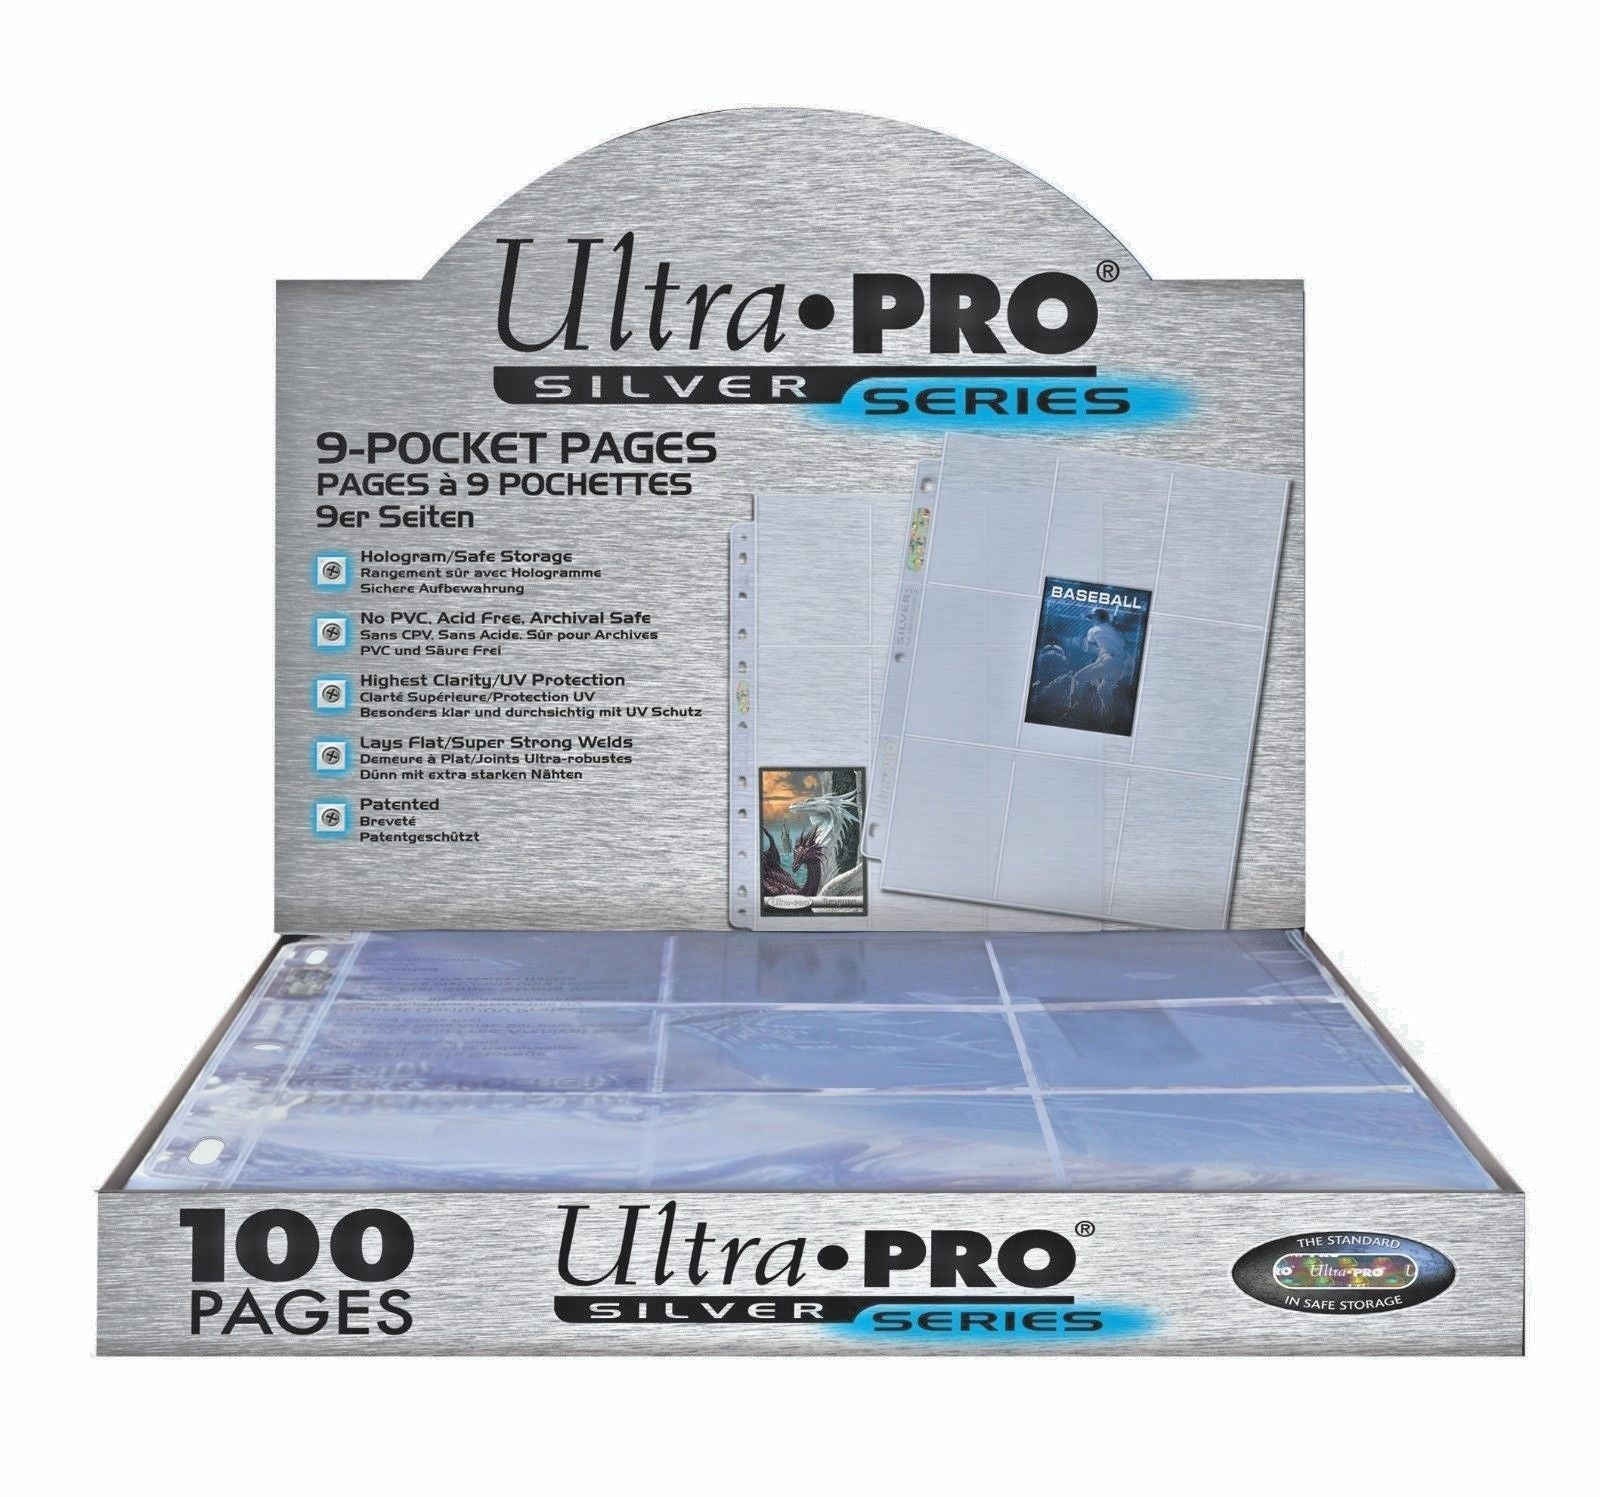 9-Pocket Pages Silver Series UltraPro - Hologram